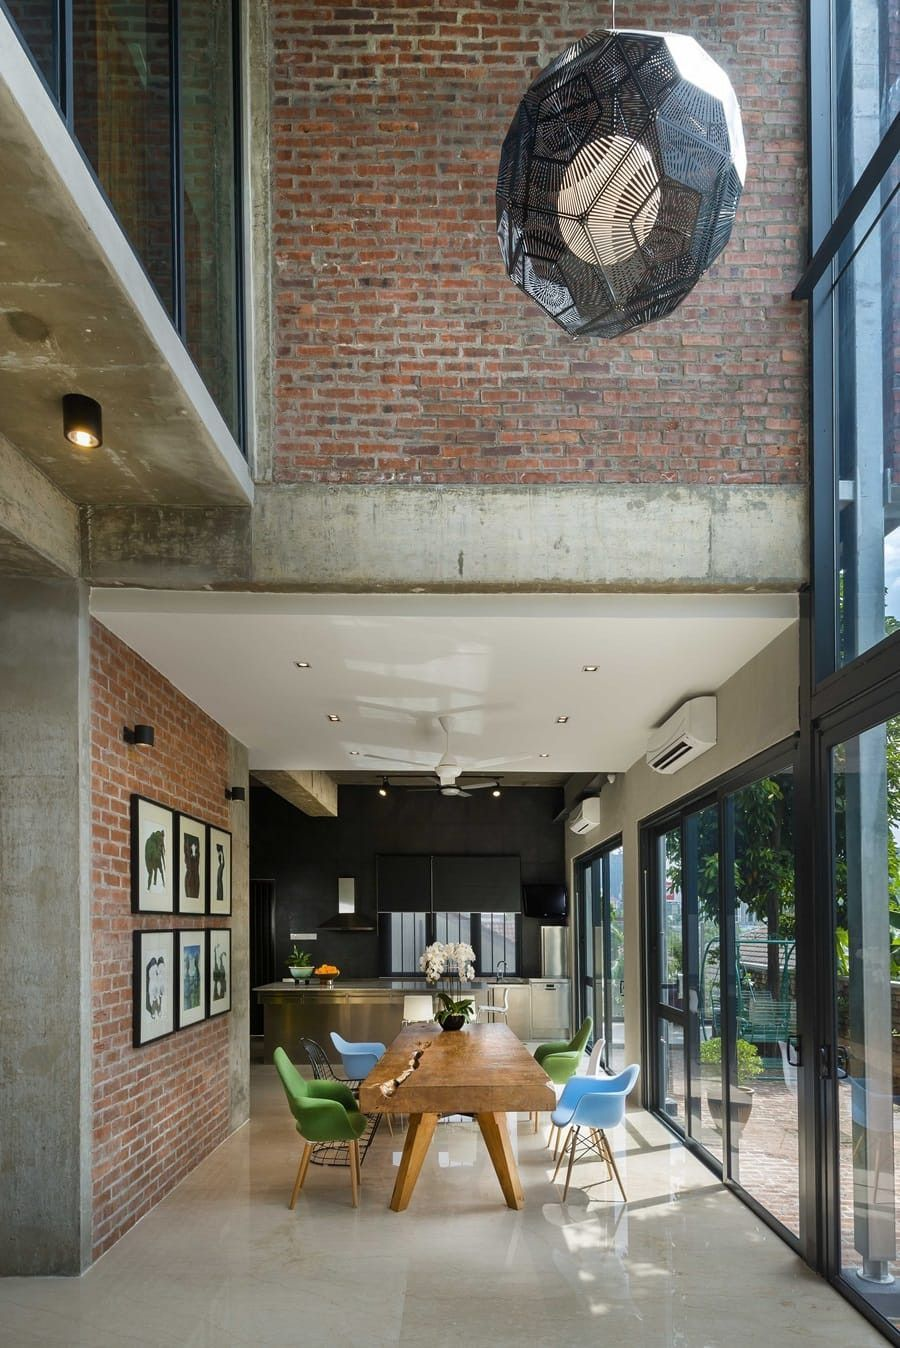 interior design of bungalow houses%0A Clay Roof Tile House by DRTAN LM Architect